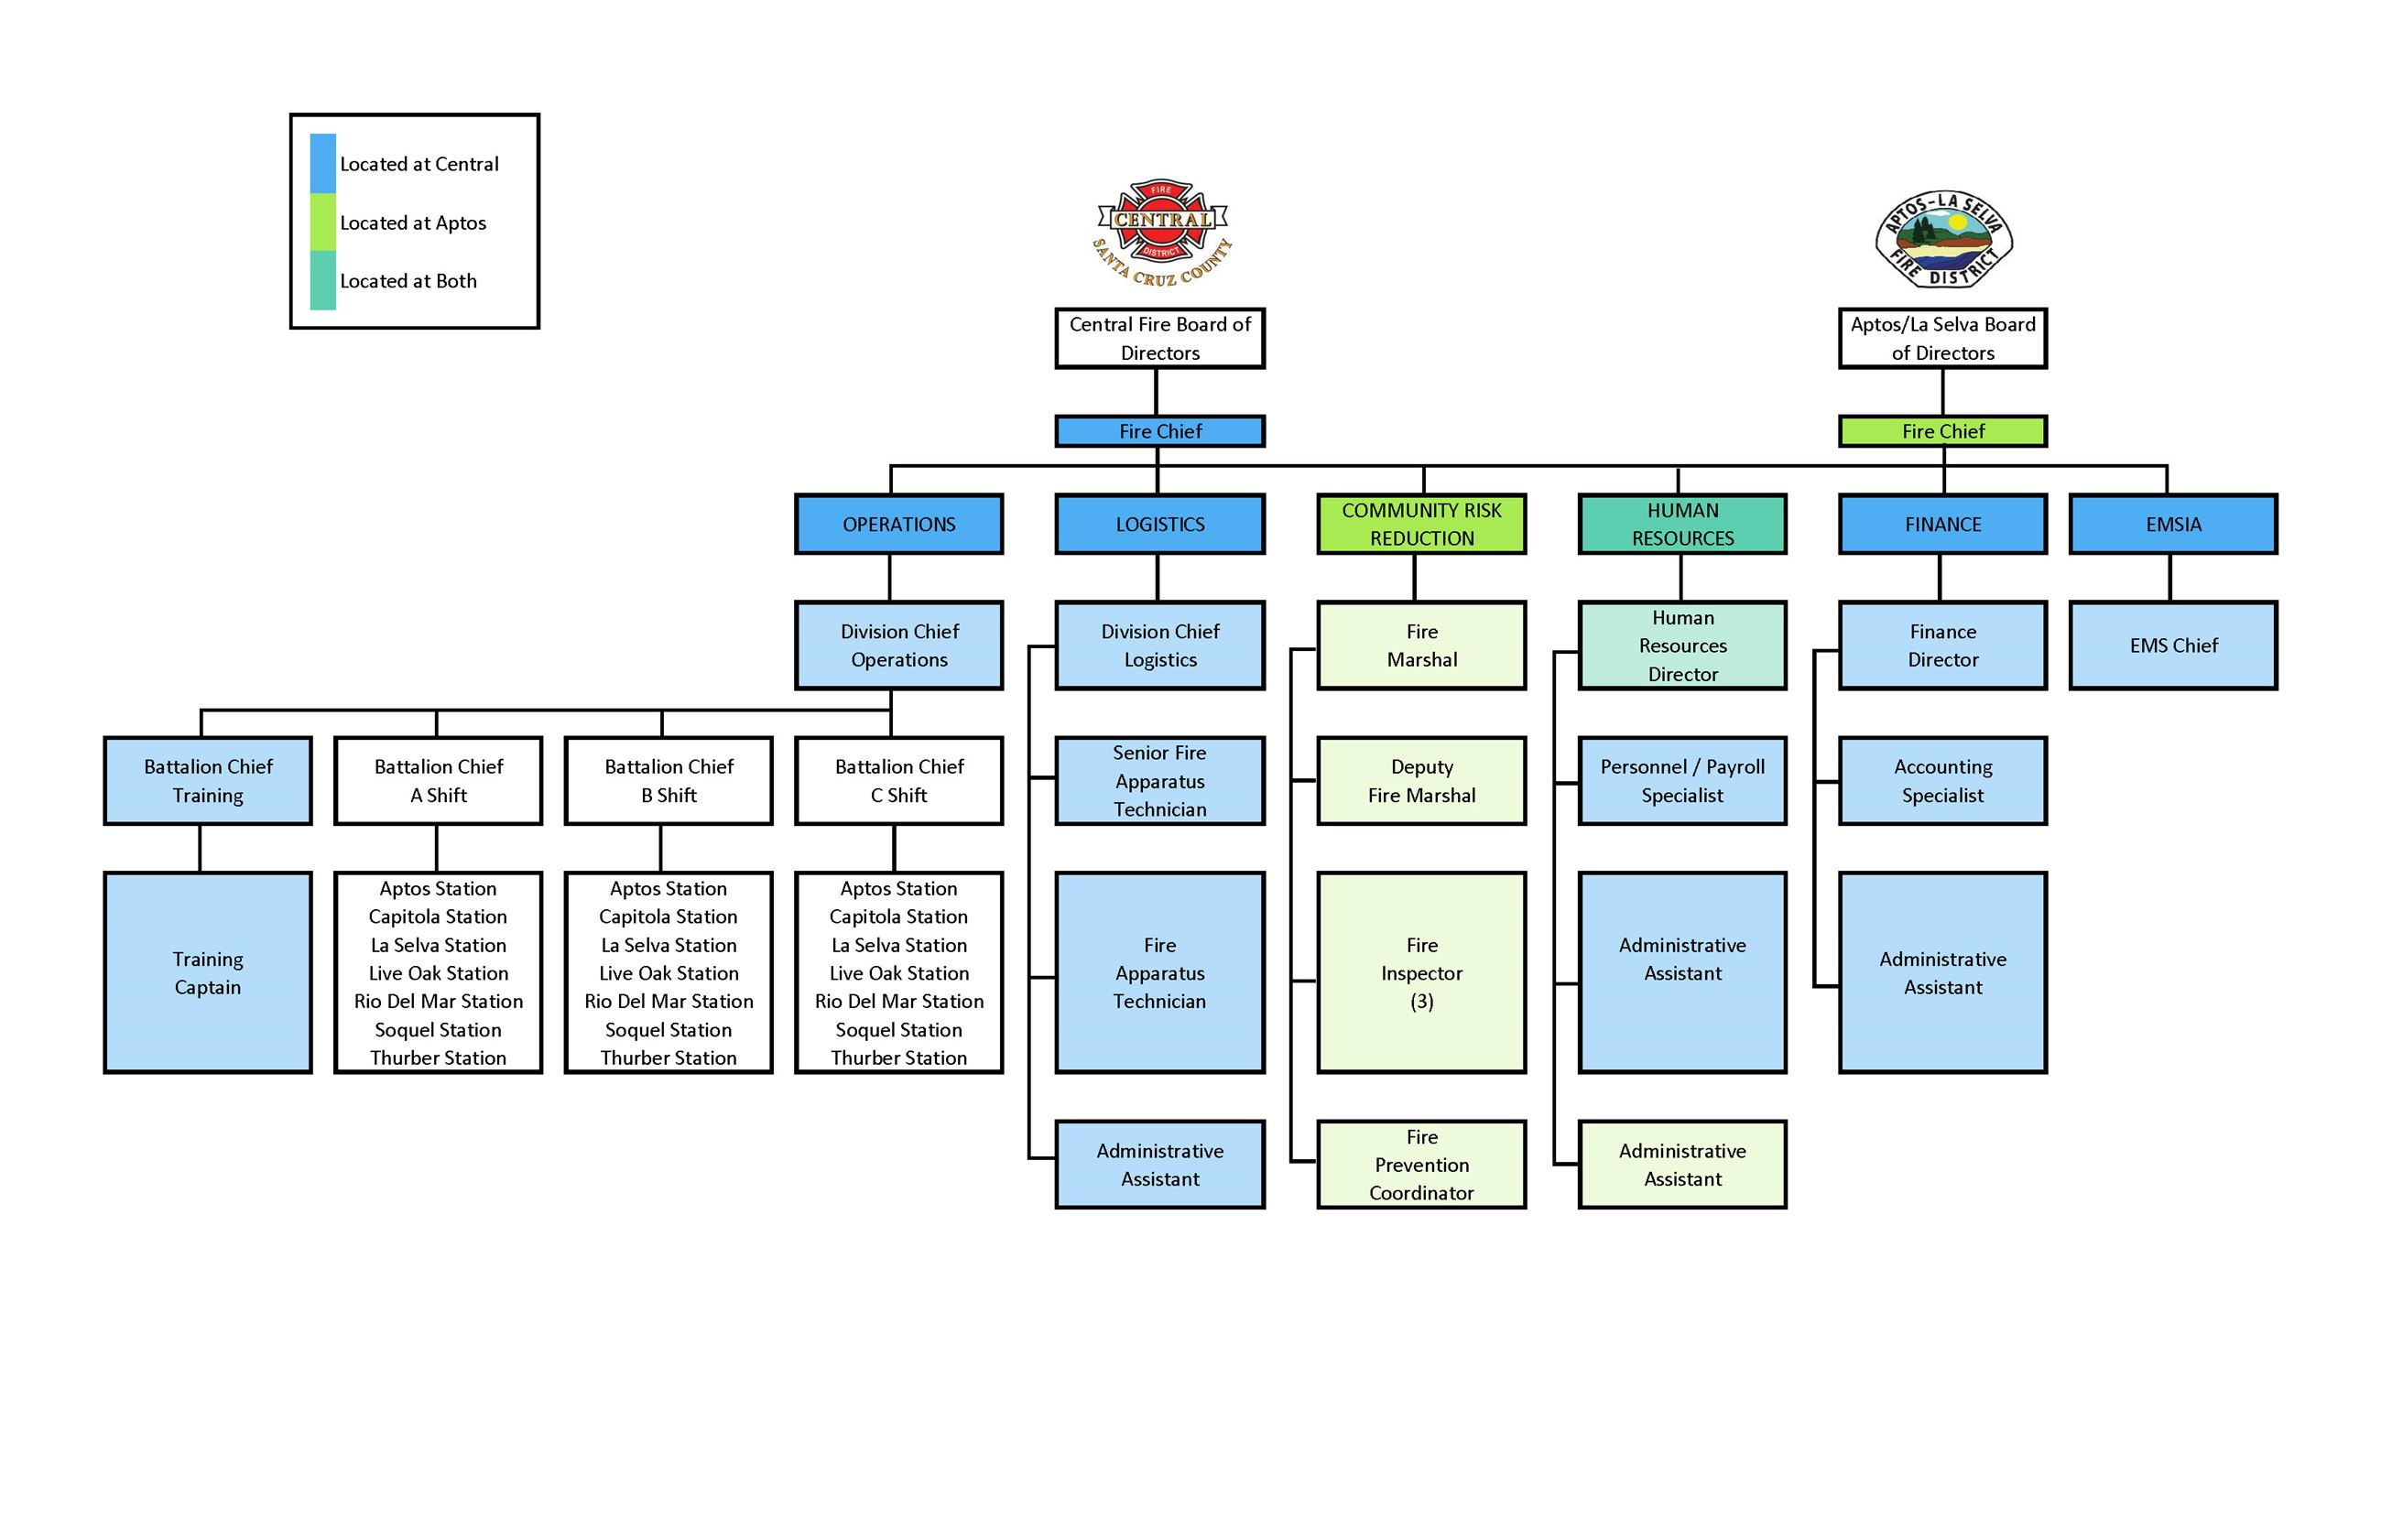 Org Chart - Revised 03 29 19